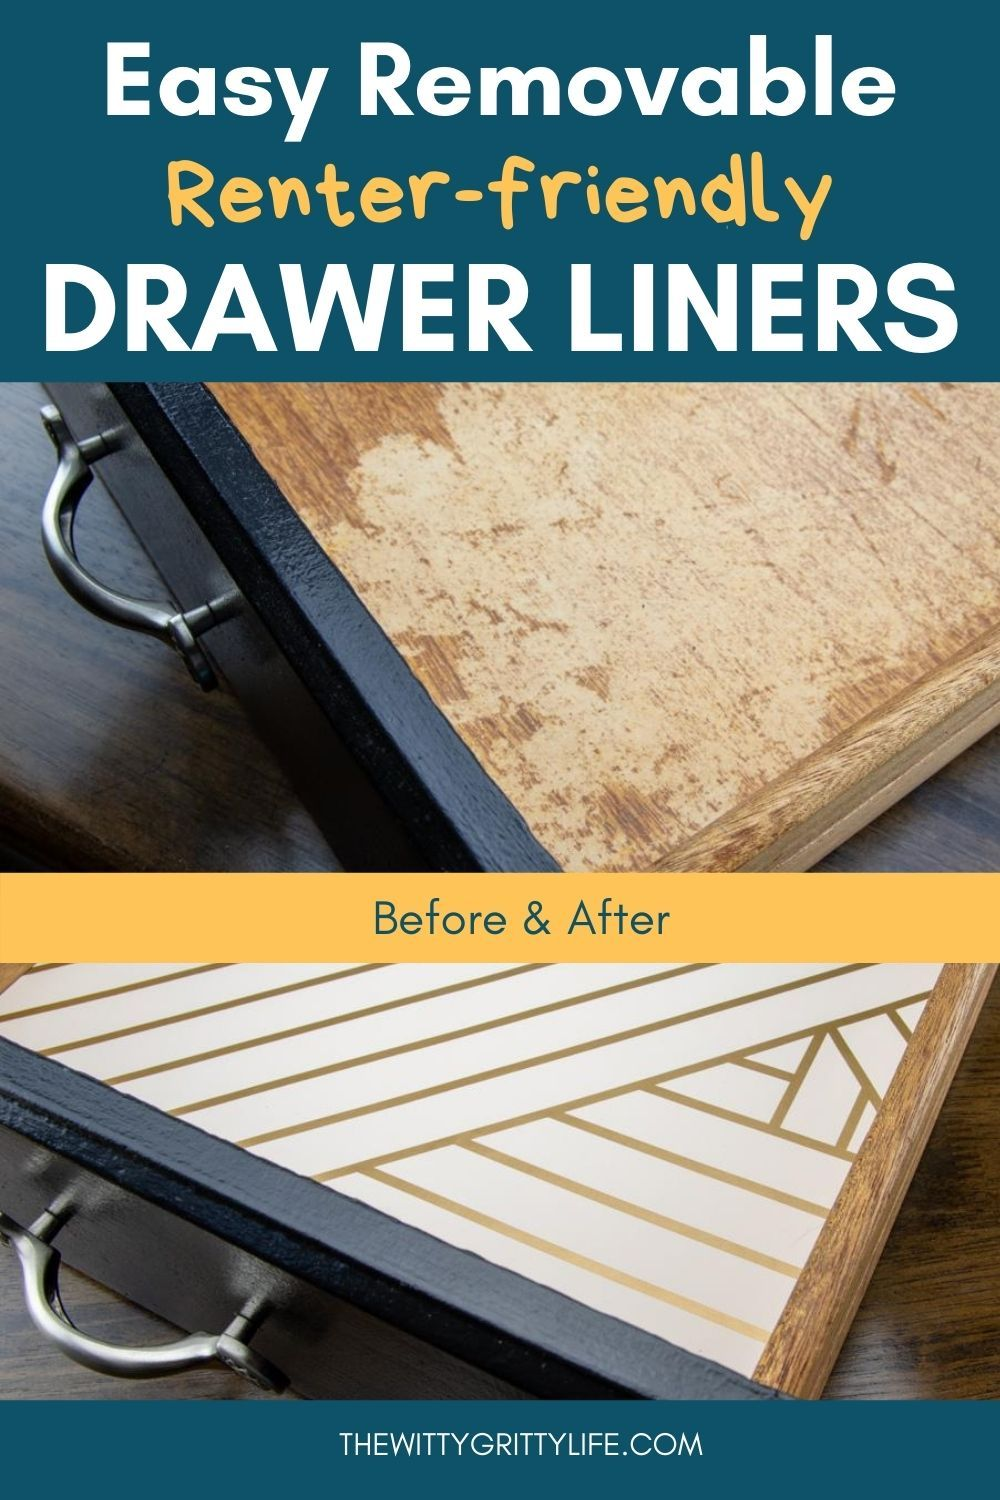 Super Easy Removable Drawer Liners In 2020 Drawer Liner Diy Drawer Liners Kitchen Drawer Liners